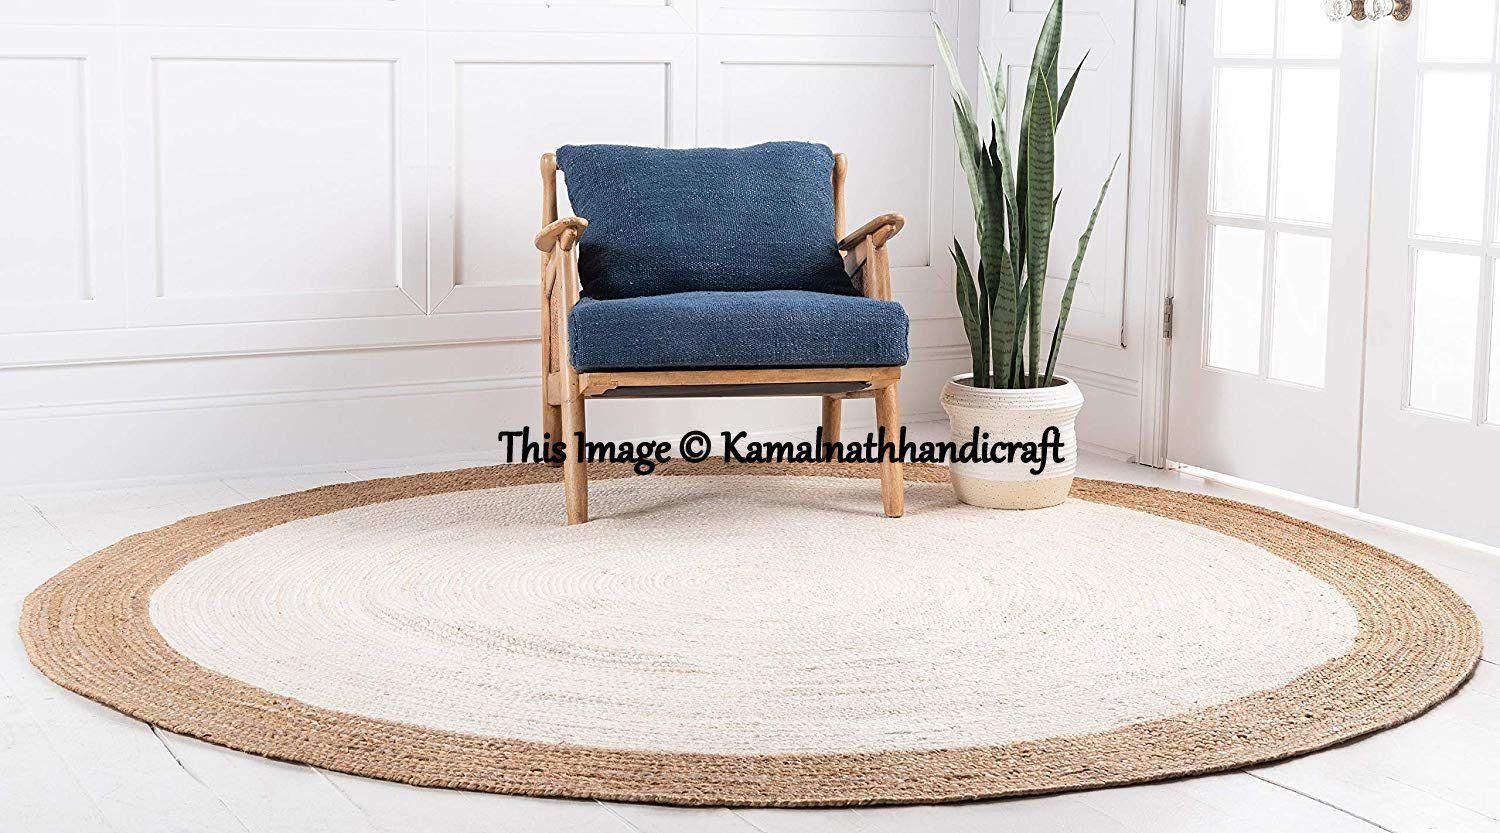 Natural Jute Round Rug Indian Braided Rag Rug Round Floor Rug Handmade Jute Rug Indian Handwoven Ribbed Solid Area Rugs Beautiful Rug 6x6 In 2020 Jute Round Rug Natural Jute Rug